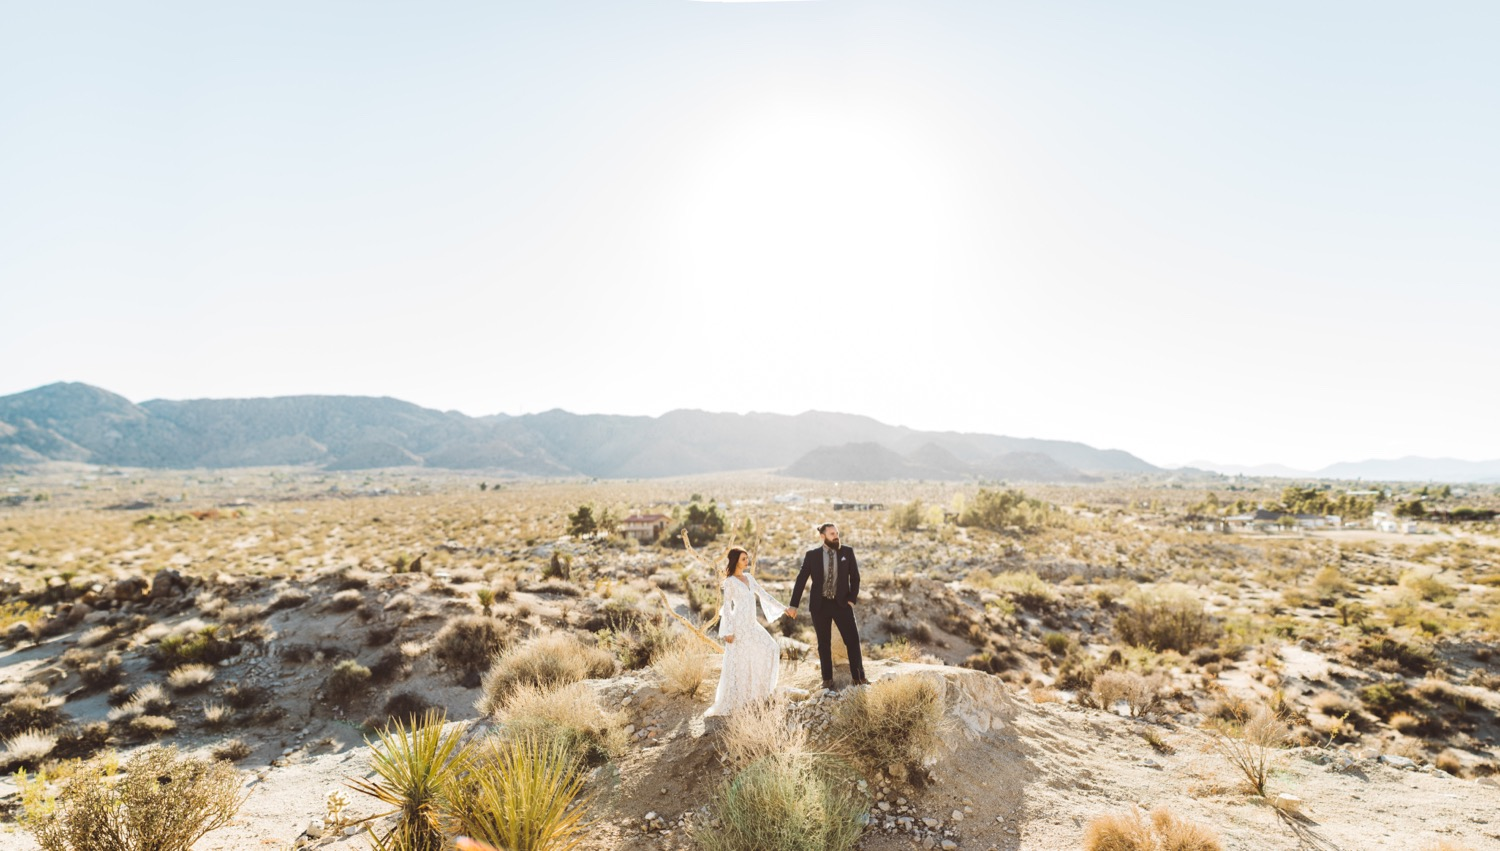 Gorgeous desert elopement shot by Steve Cowell Photography!